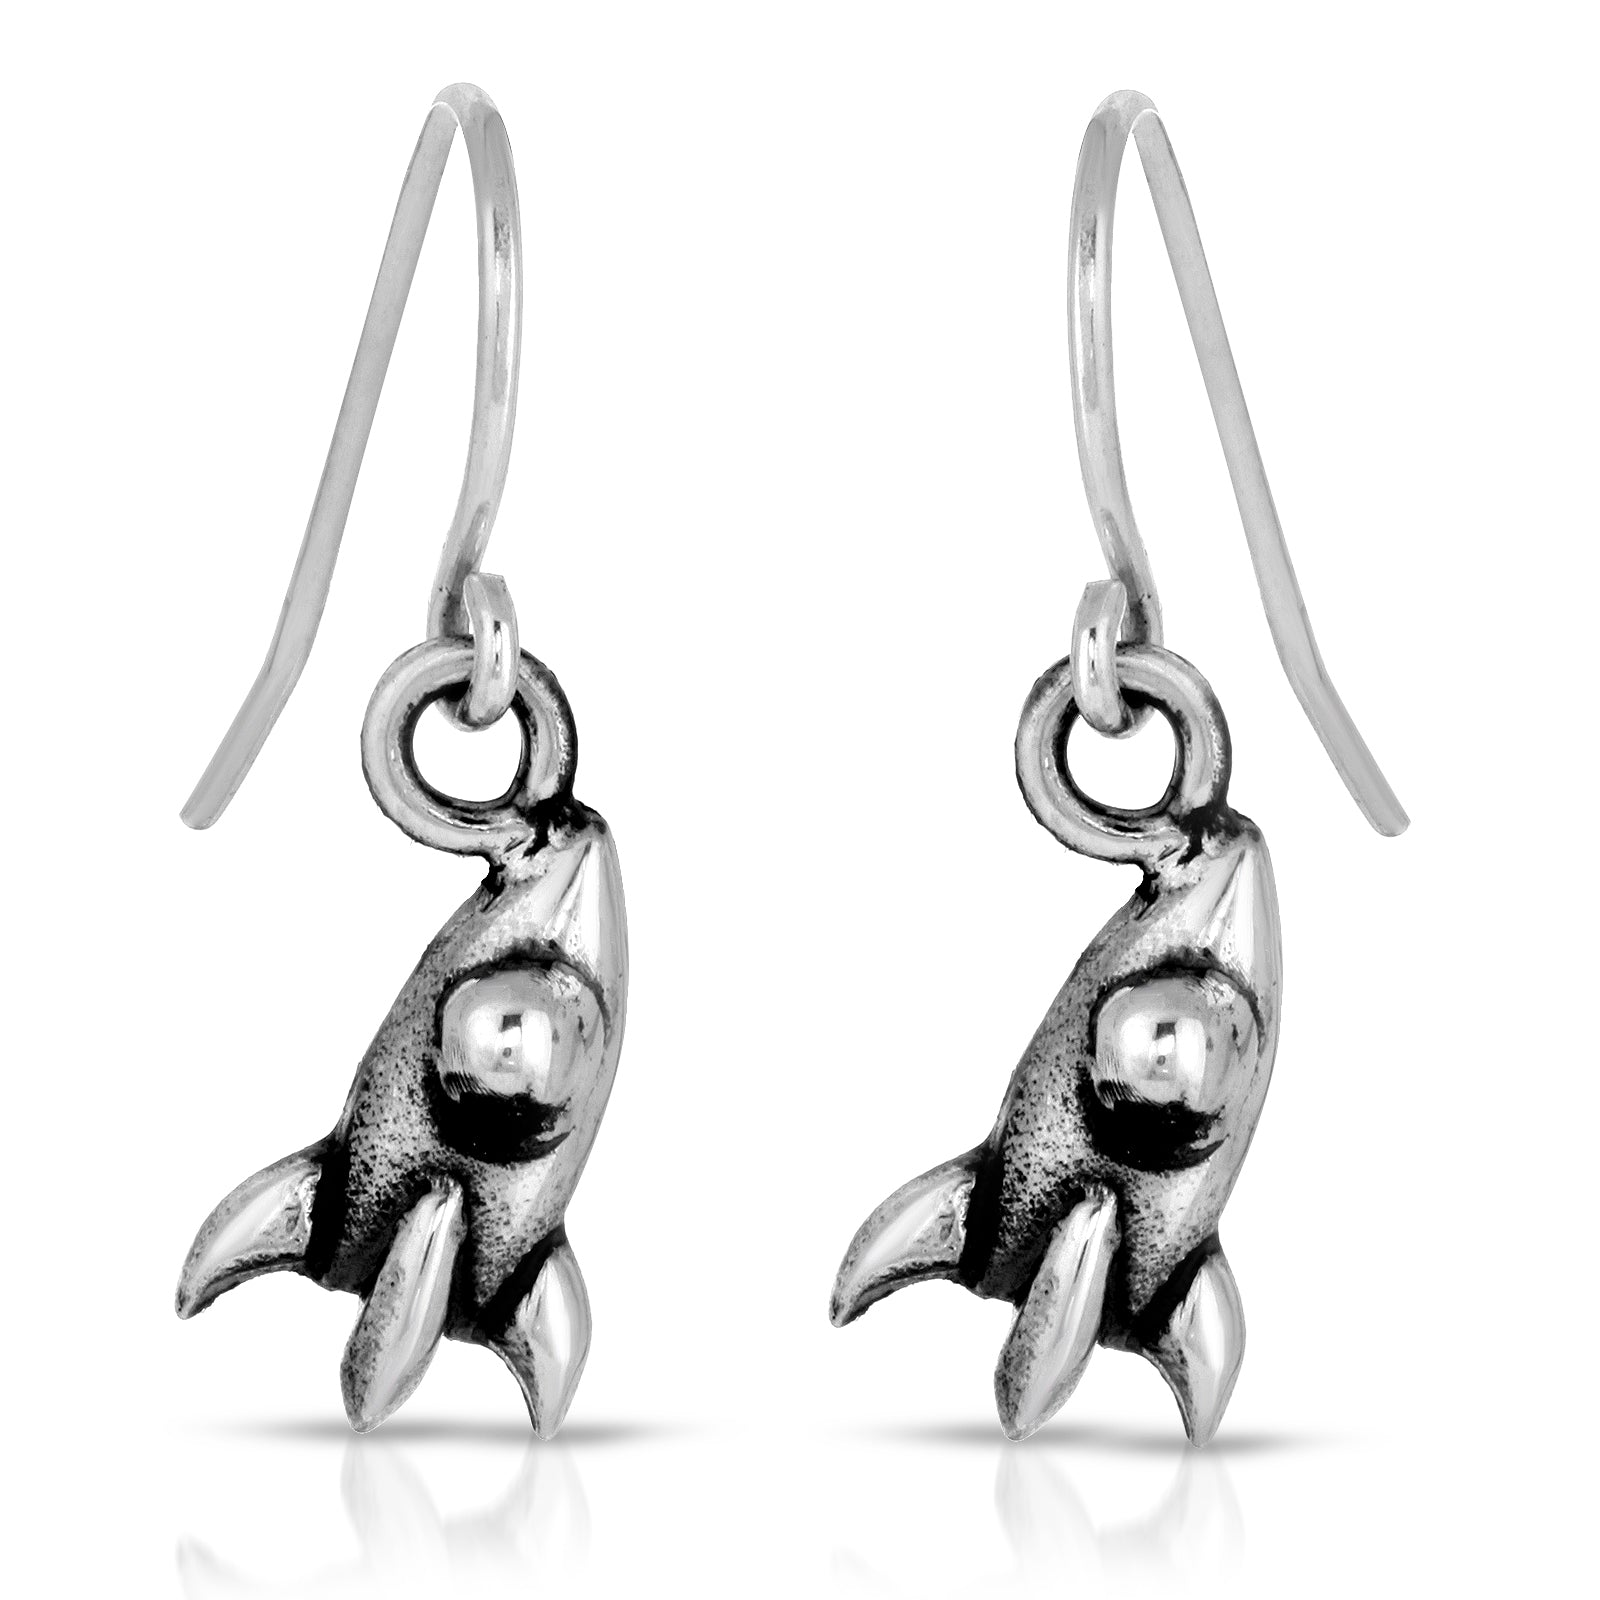 The W Brothers Area 51 Space Collection featuring our Sterling Silver Rocket Dangle Earrings perfect for women fashion. Designed from premium Grade A silver, available at www.thewbros.com, NASA rocket ship Area 51 earrings